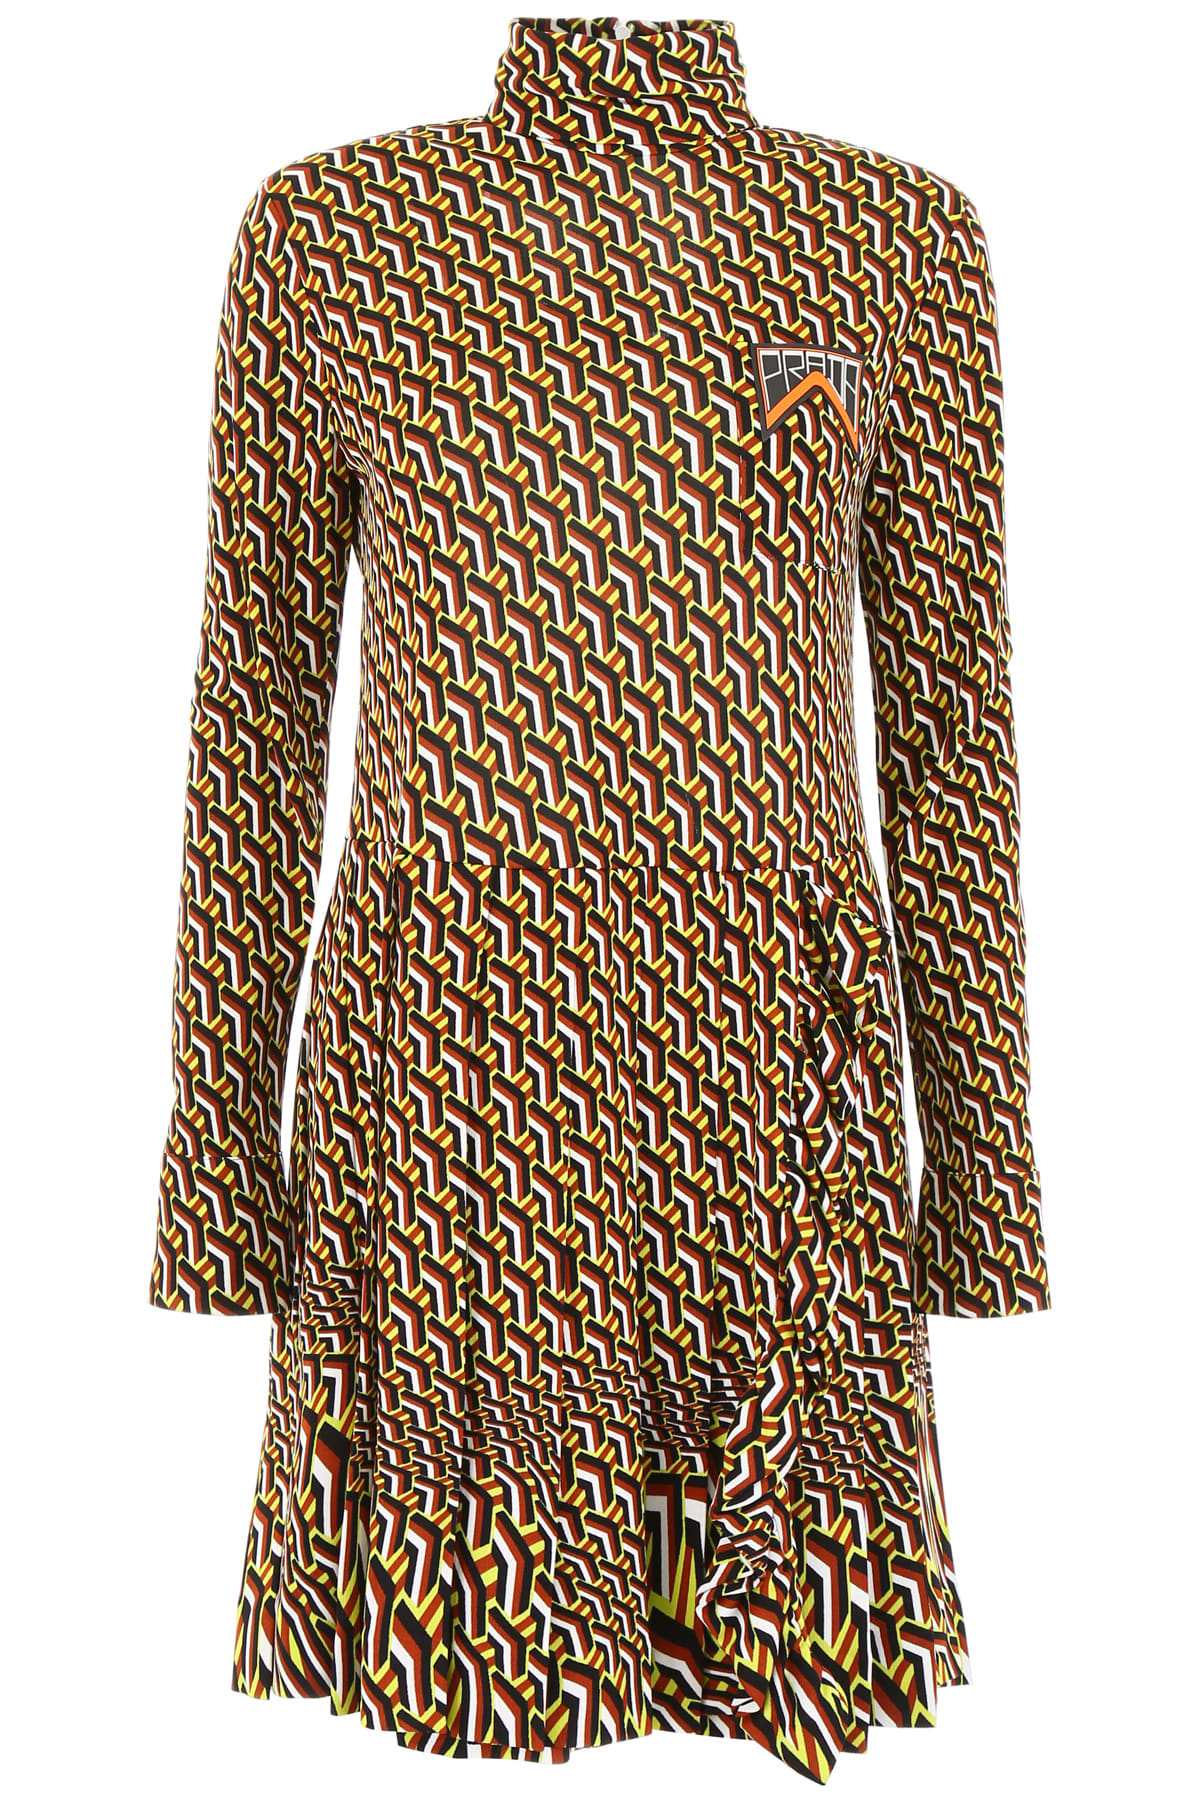 Prada Printed Jersey Dress